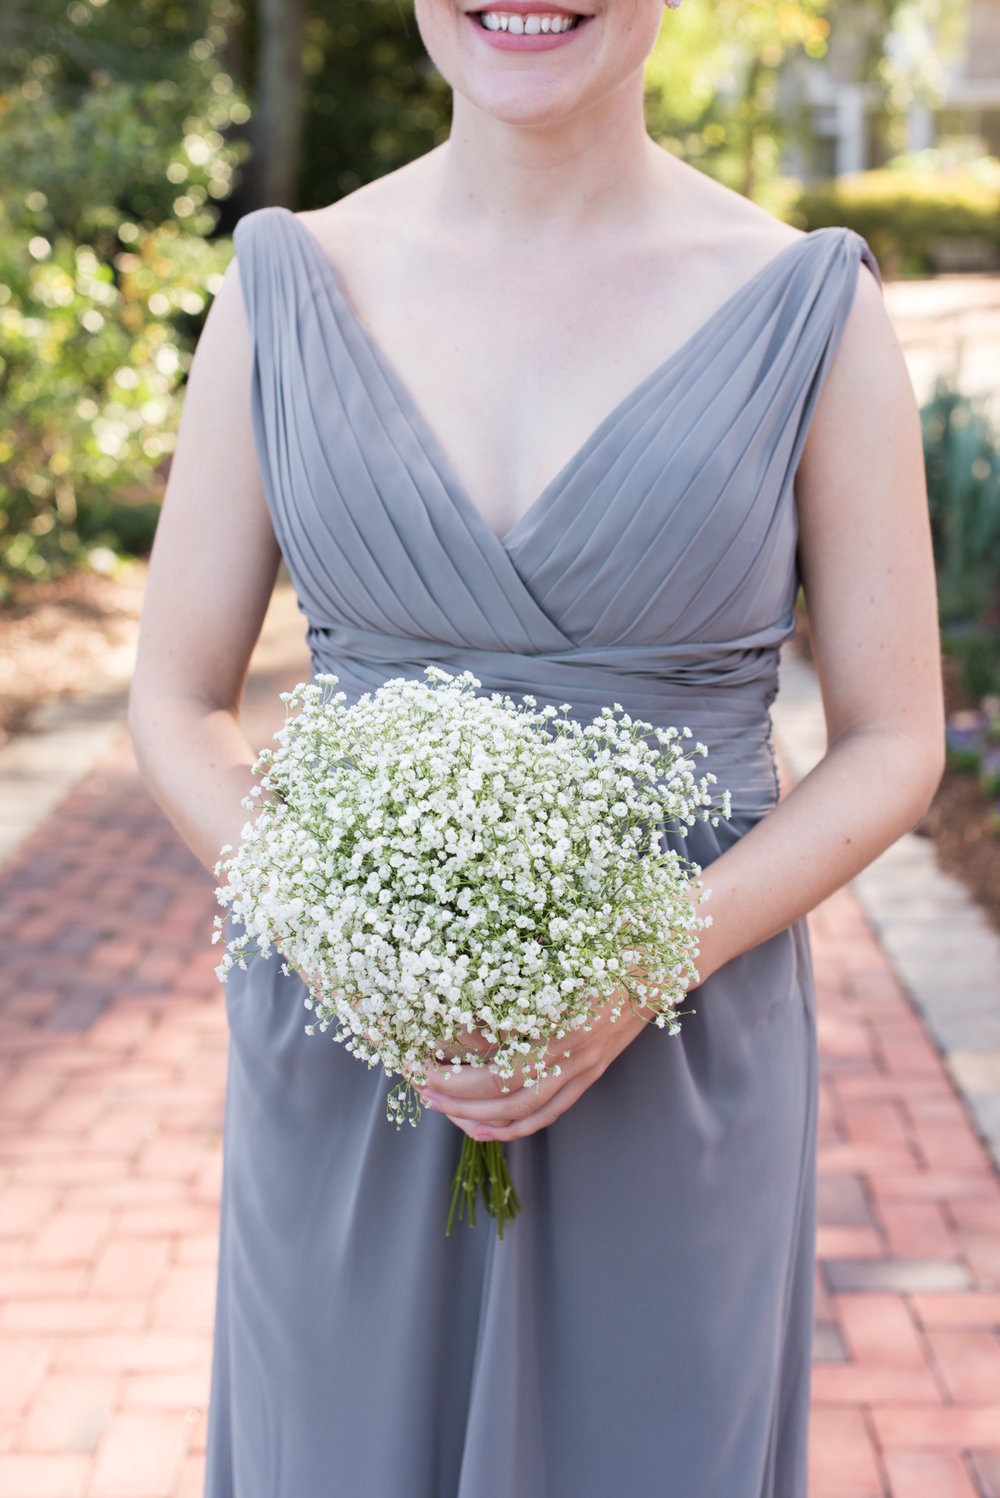 Bridesmaid Bouquet - Travel Themed Wedding - Caitlin Gerres Photography